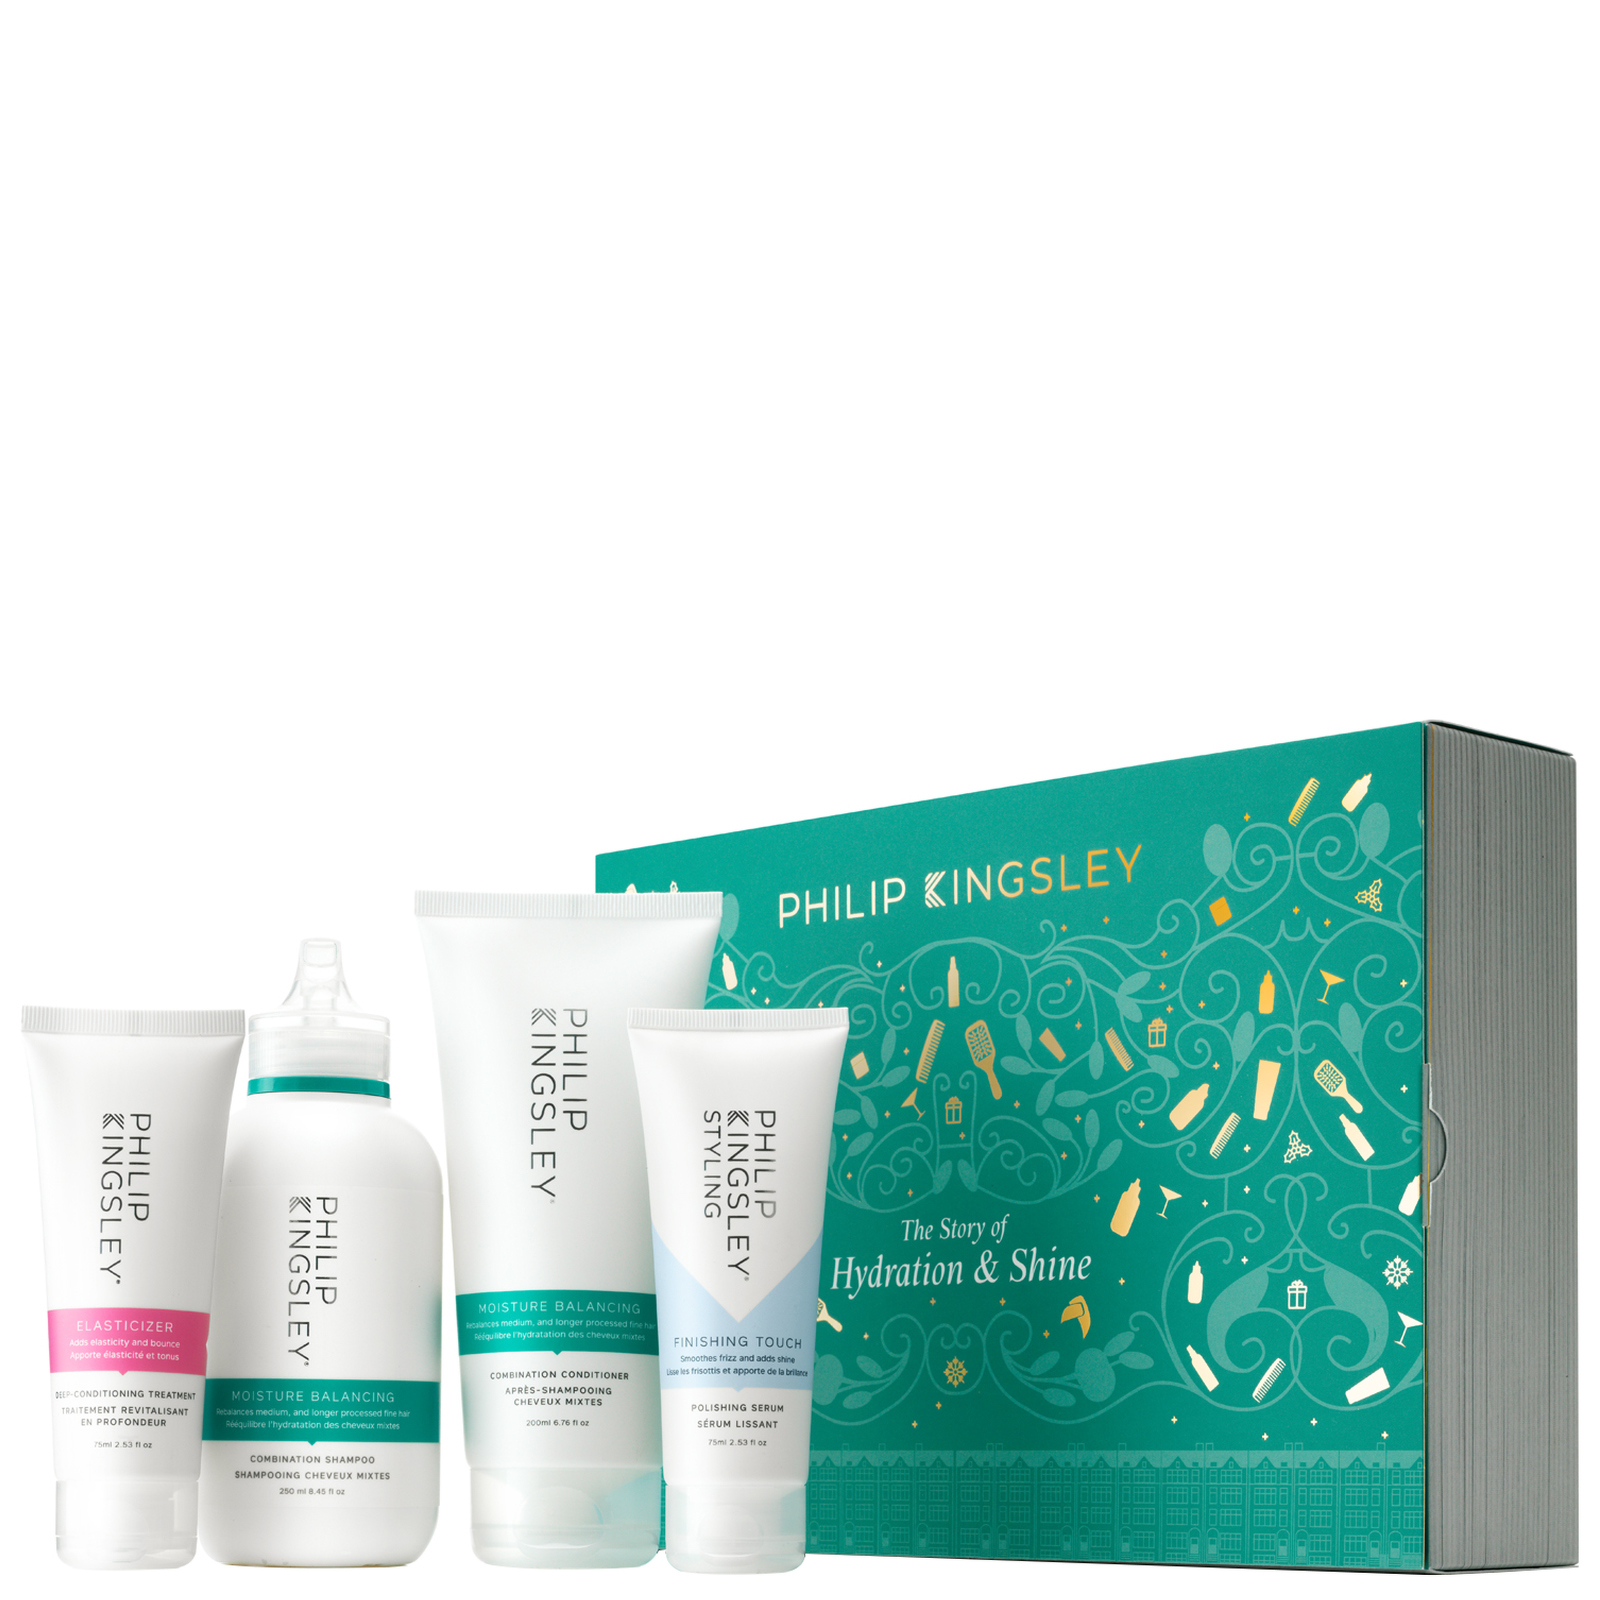 Philip Kingsley Kits A Hydration & Shine Story (Worth £81.00)